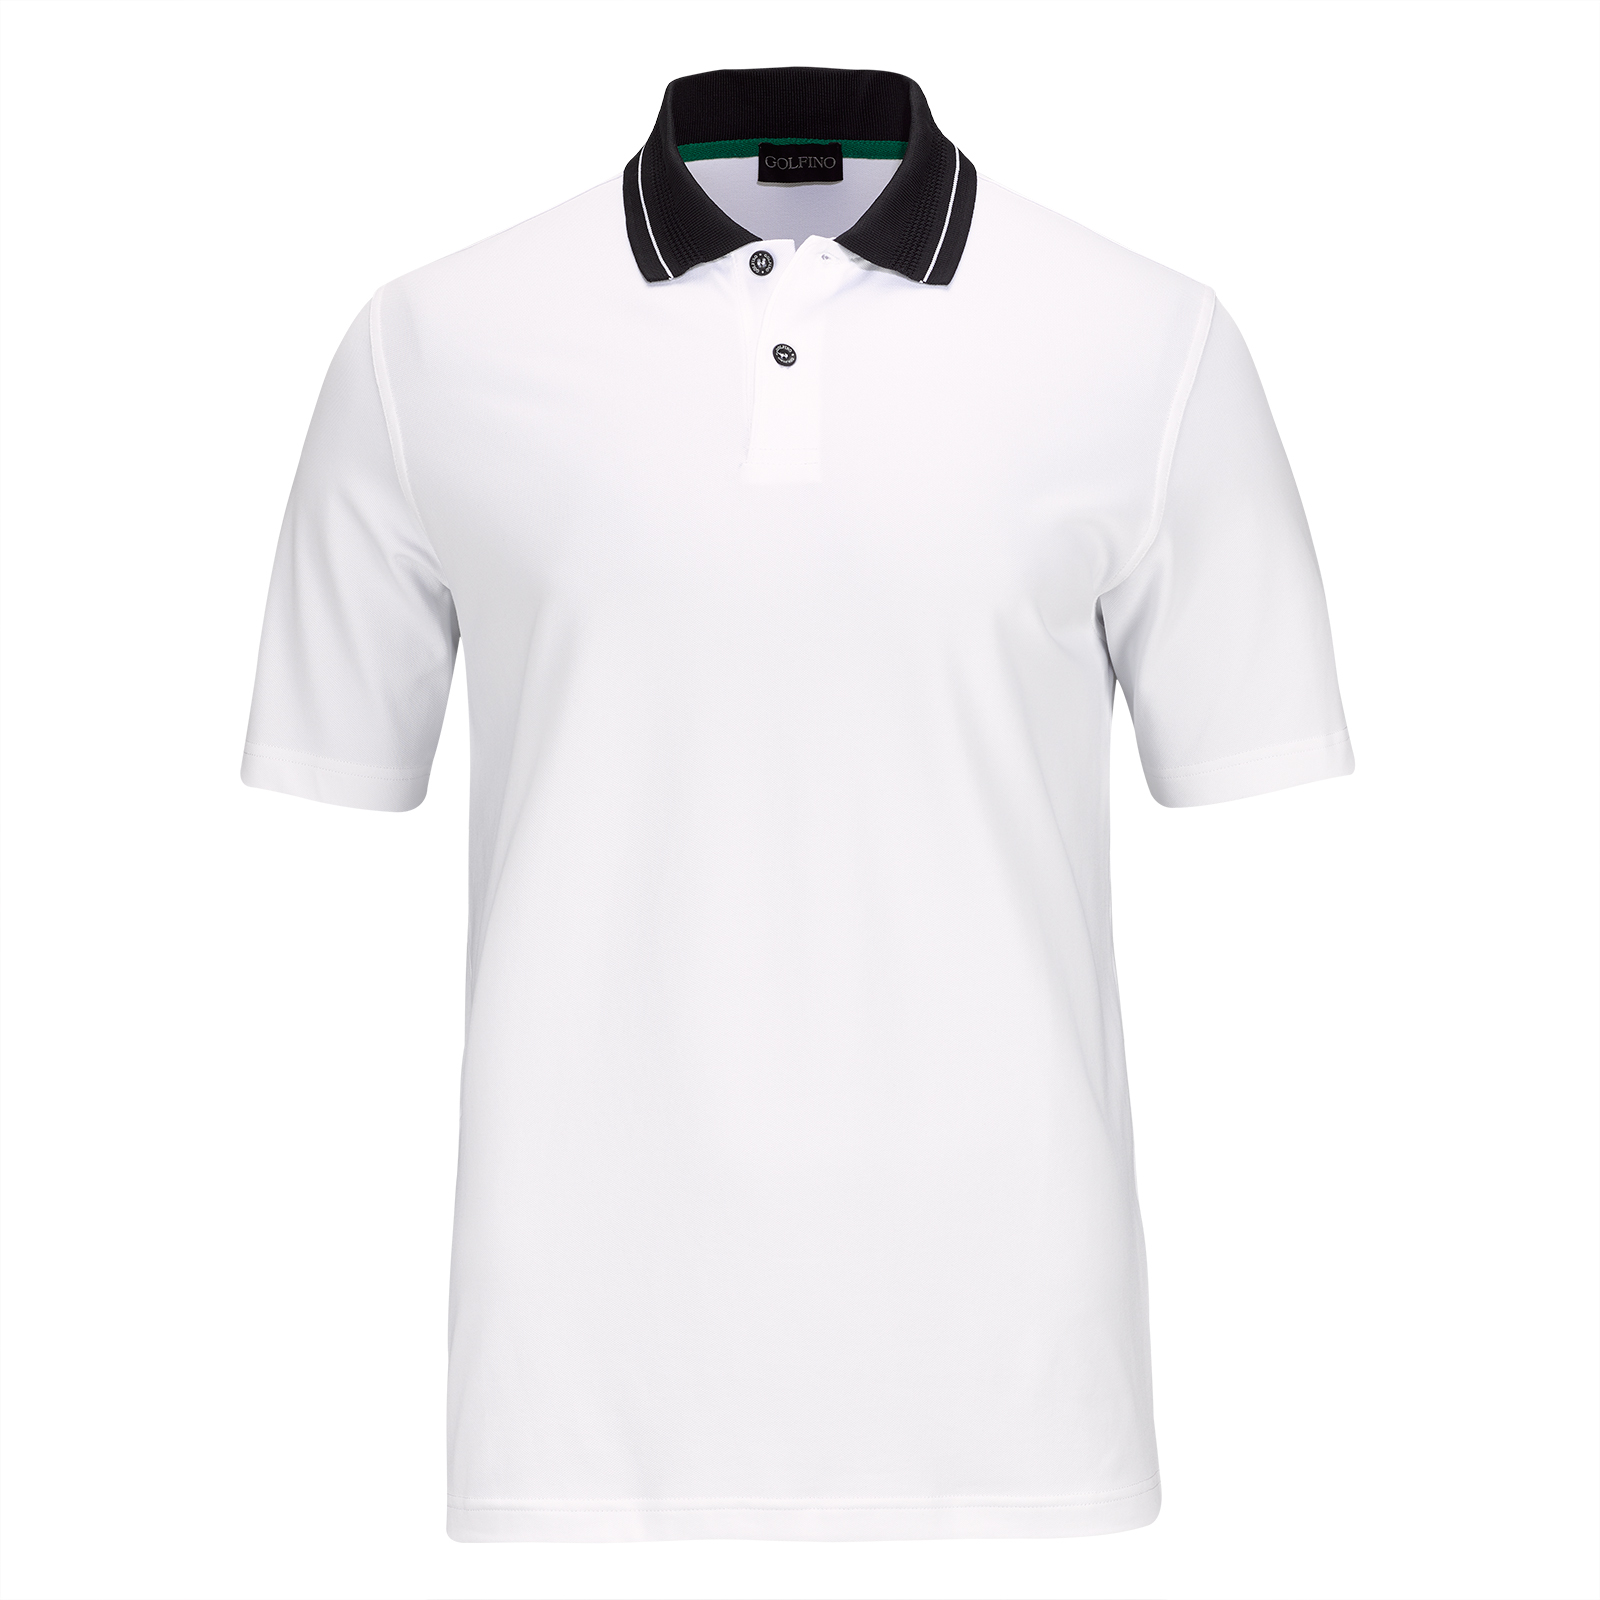 Herren Cotton-Blend Golf-Piqué mit Sunprotection und Moisture Management